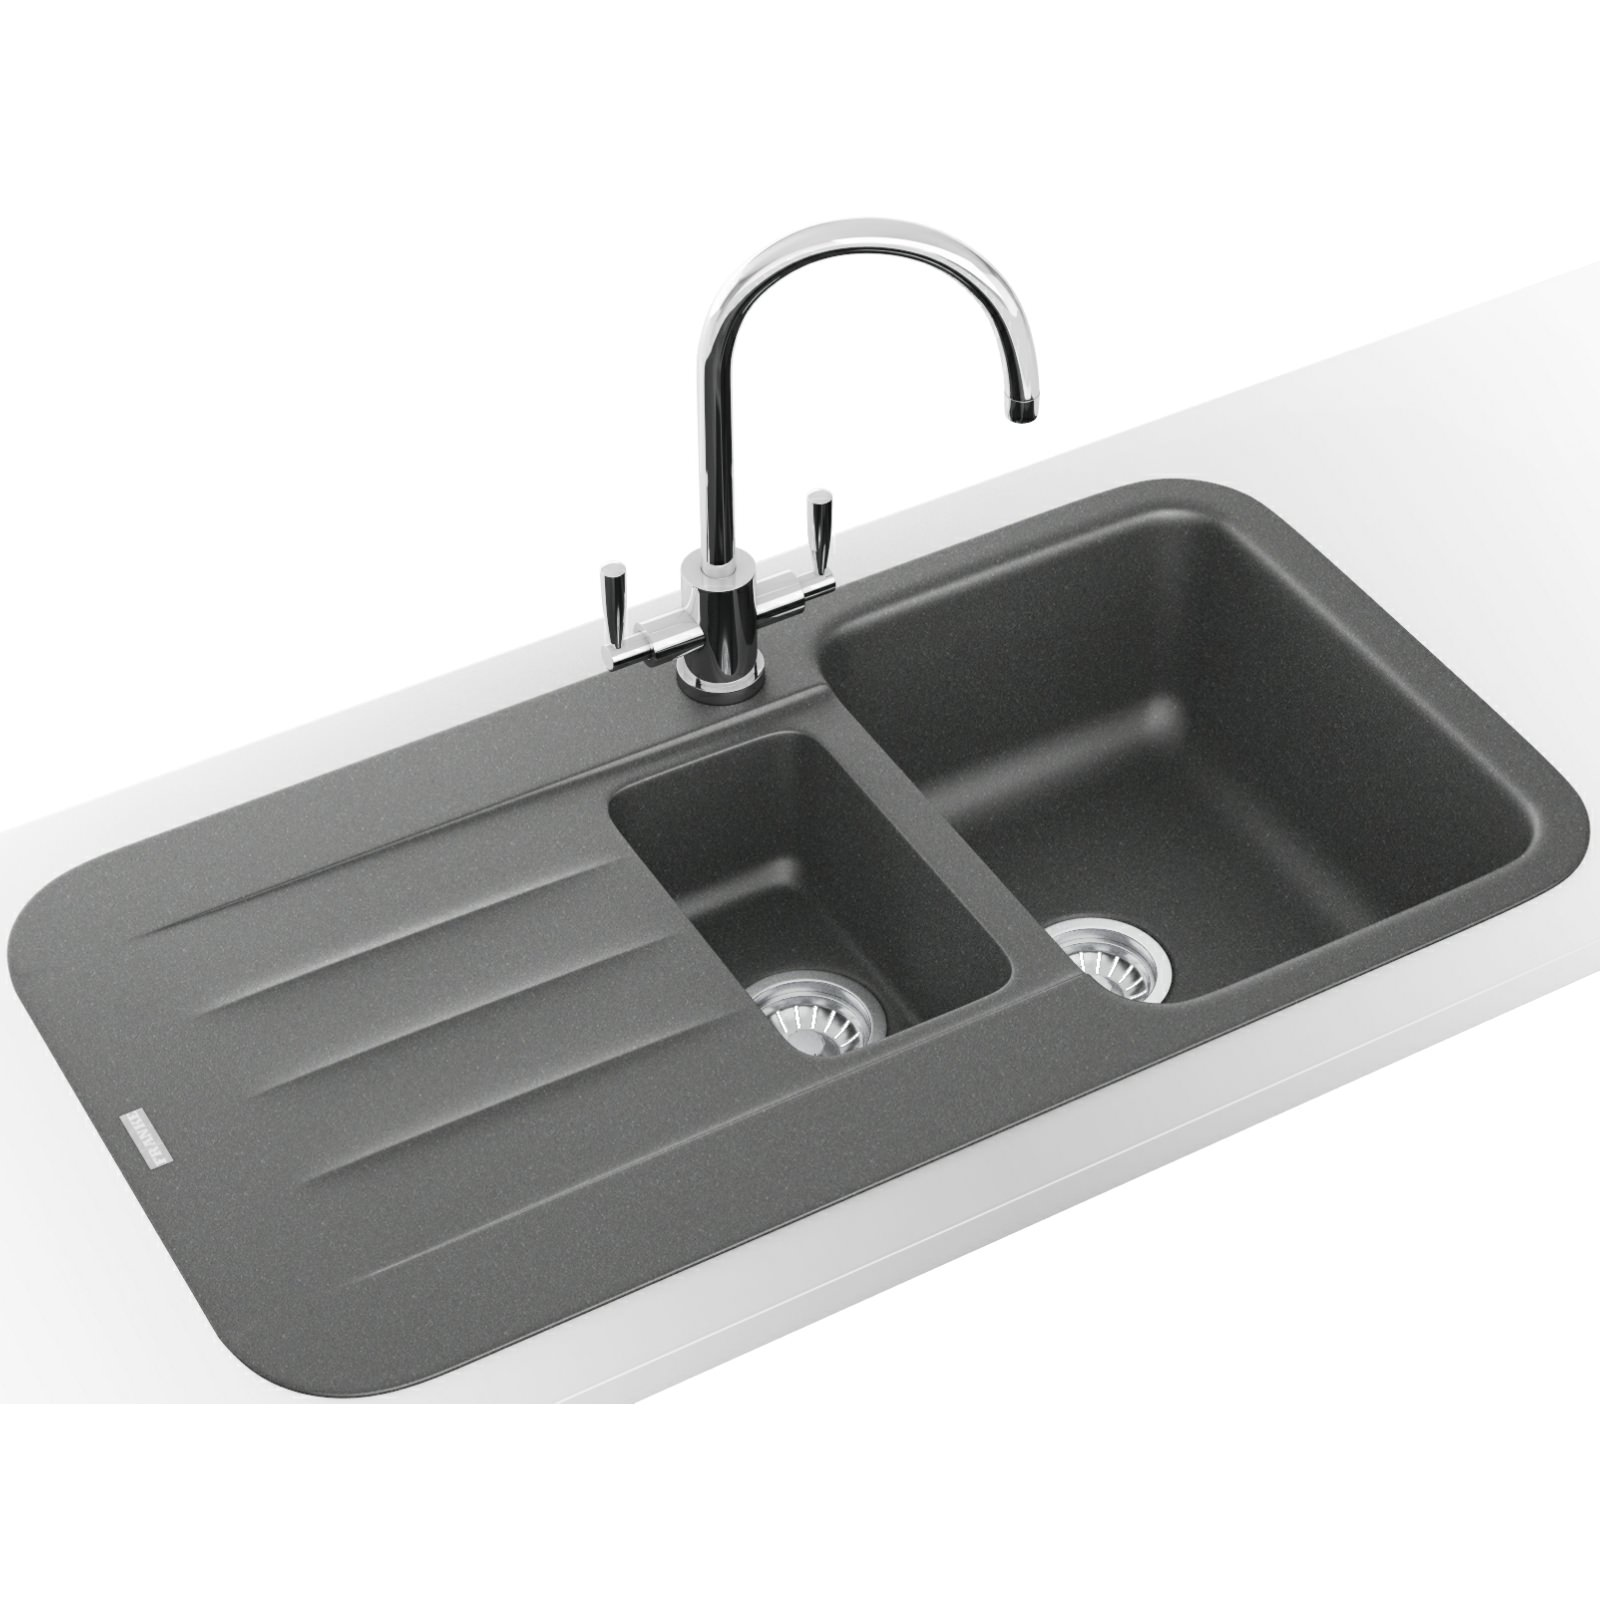 Franke Grey Sink : Franke Pebel DP PBG 651 Fragranite Stone Grey Inset Sink And Tap 114 ...